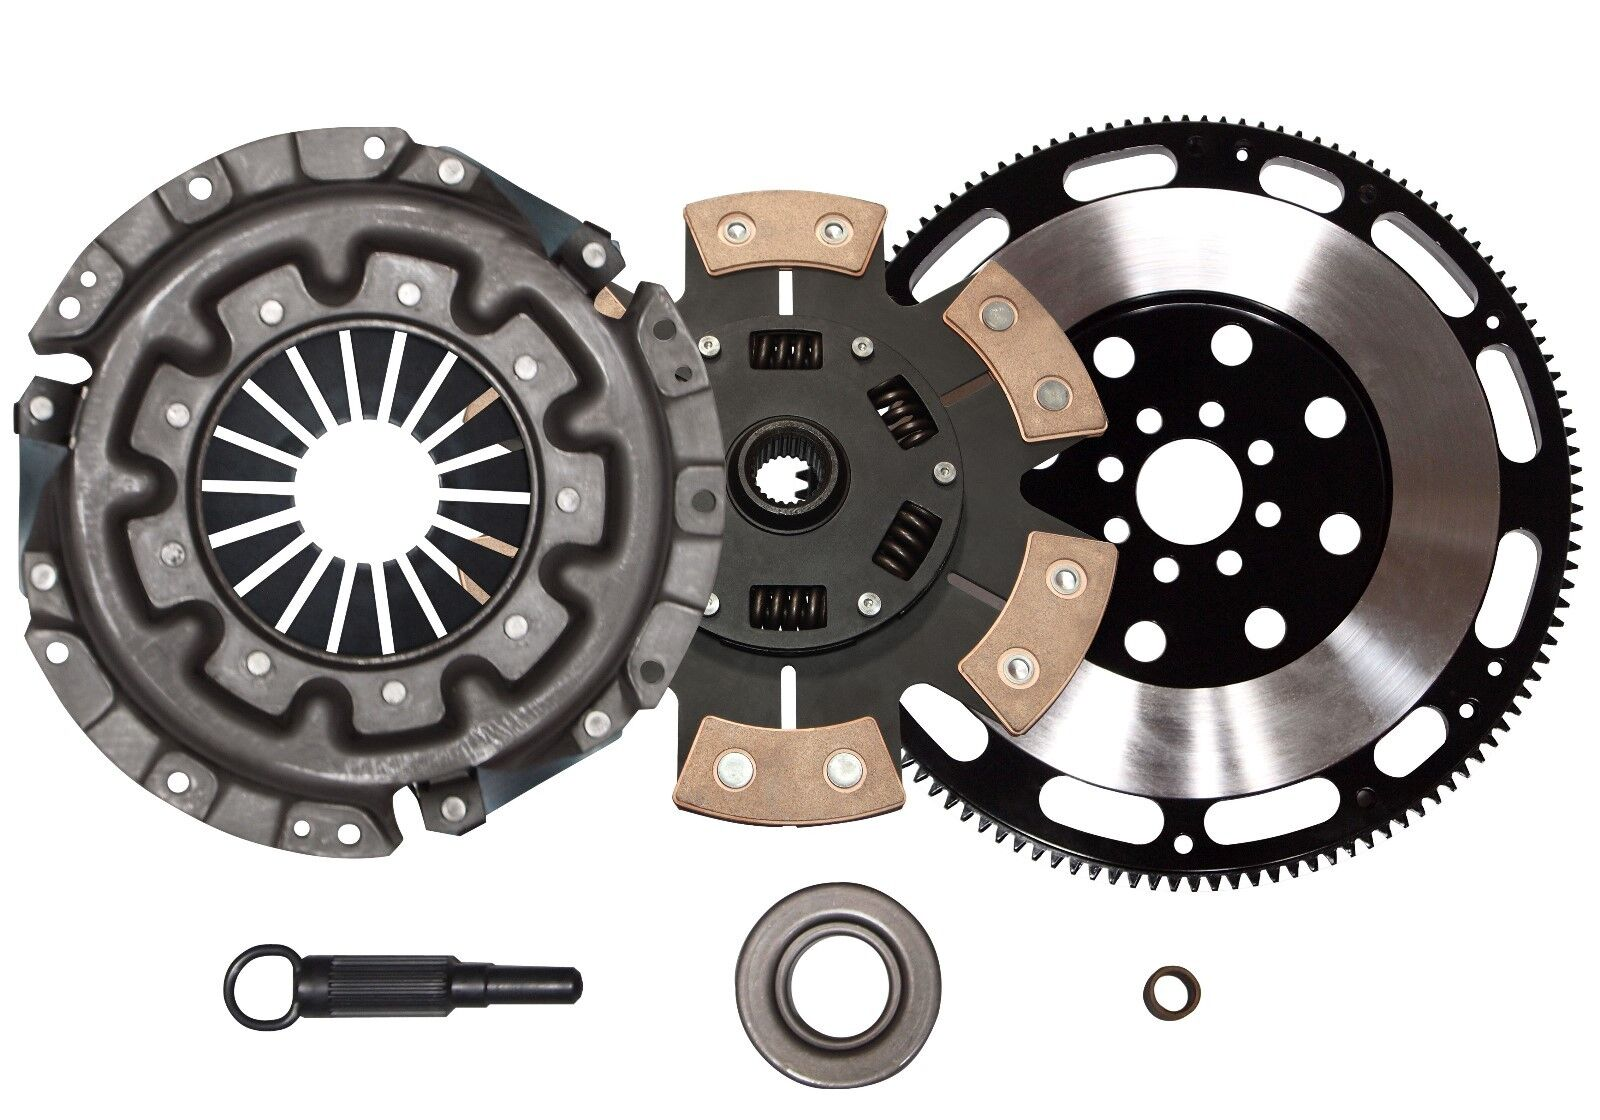 QSC Stage 3 Clutch Kit + Forged Flywheel Fits Nissan 90-96 300ZX 3.0L Non Turbo | eBay